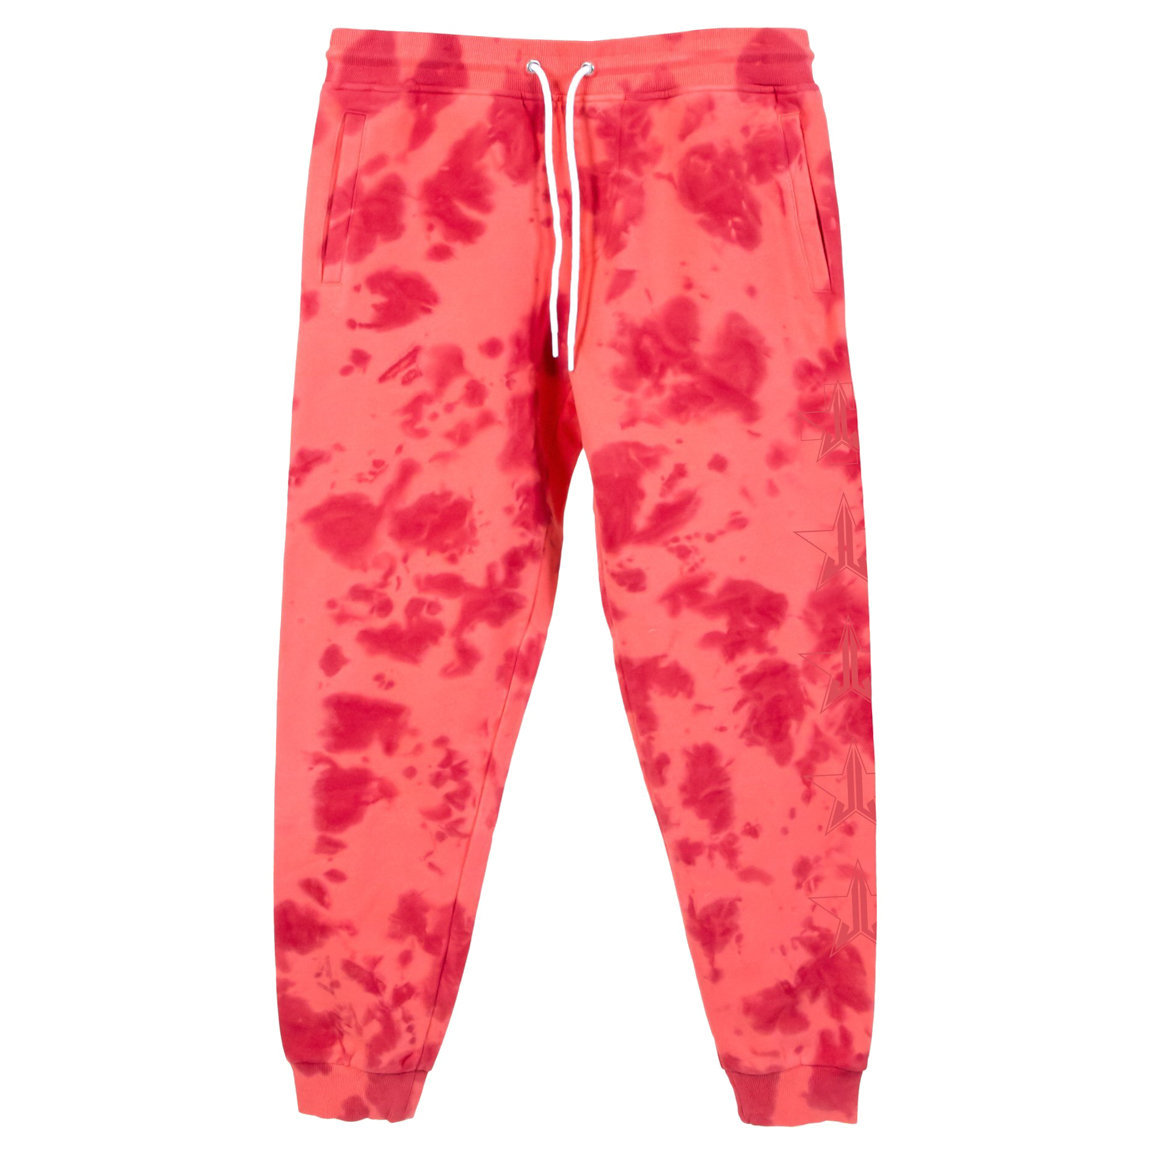 Jeffree Star Cosmetics Blood Sugar Dye Jogger 3X-Large alternative view 1.